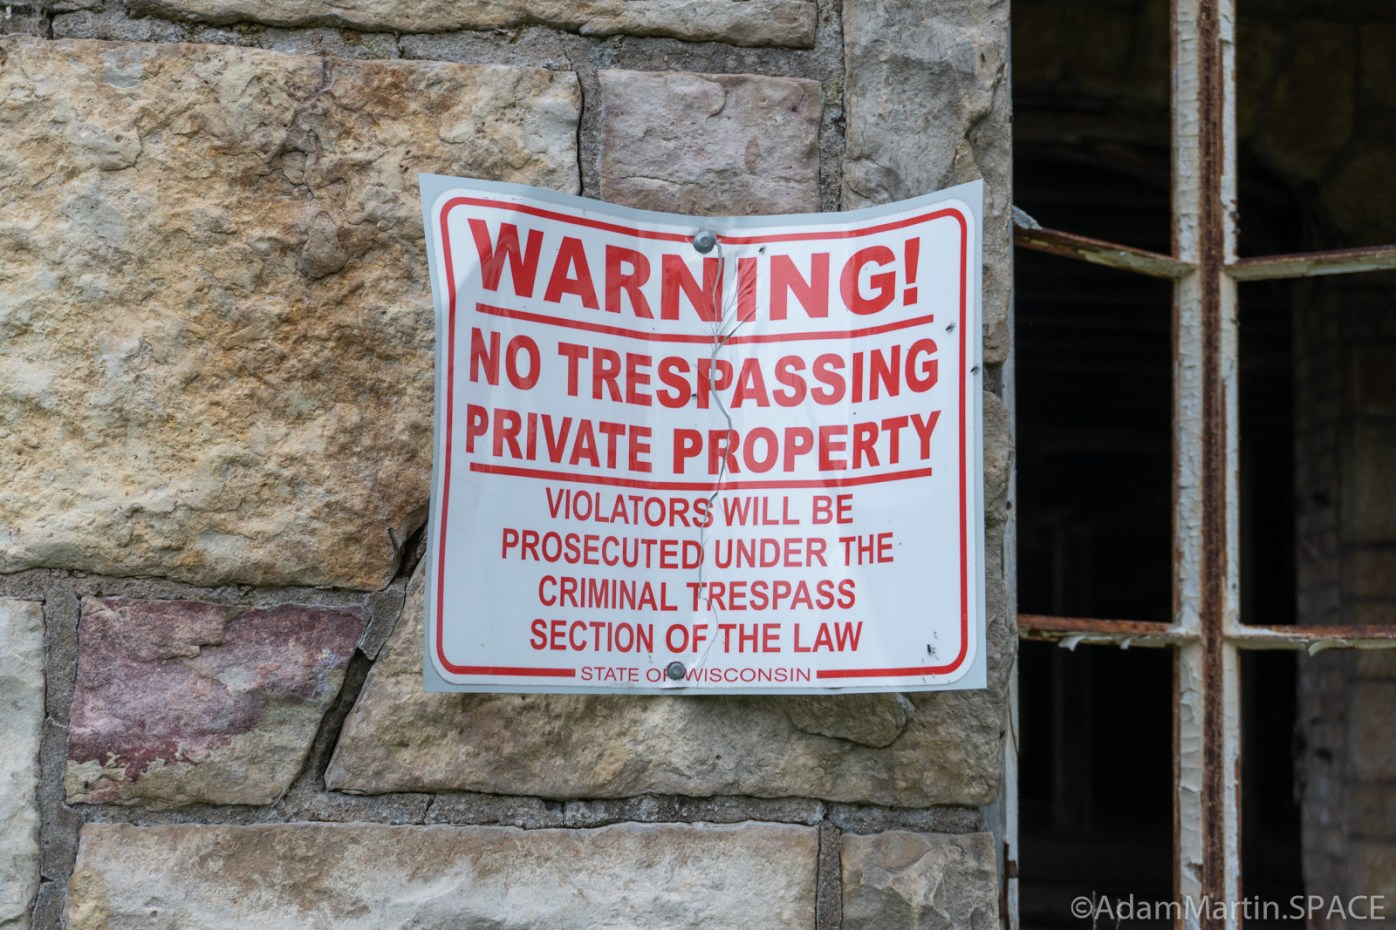 Alexian Brothers Novitiate - WARNING NO TRESPASSING